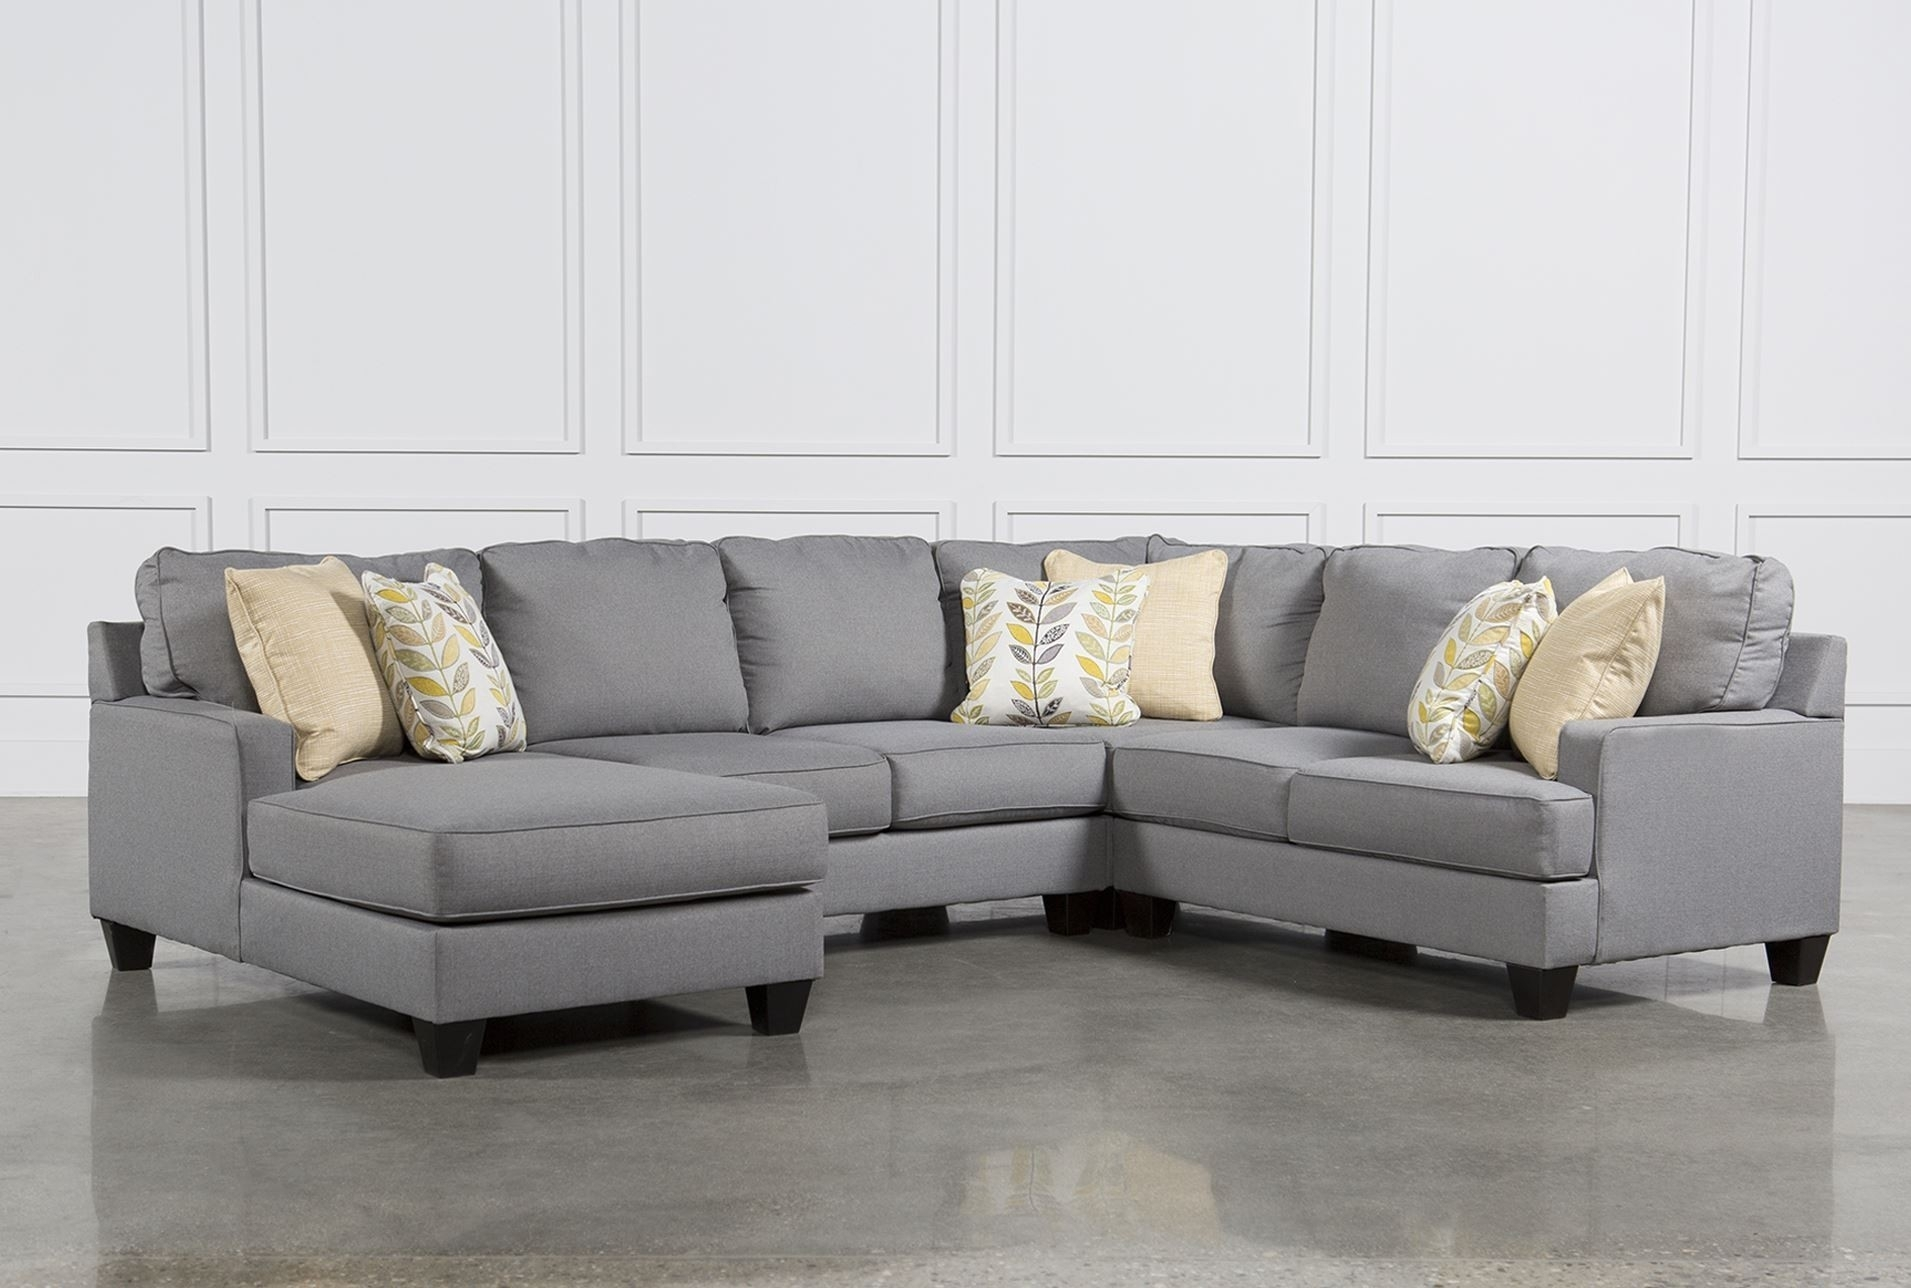 Living Spaces Sectional Sofas - Implantologiabogota.co for Delano 2 Piece Sectionals With Raf Oversized Chaise (Image 27 of 30)